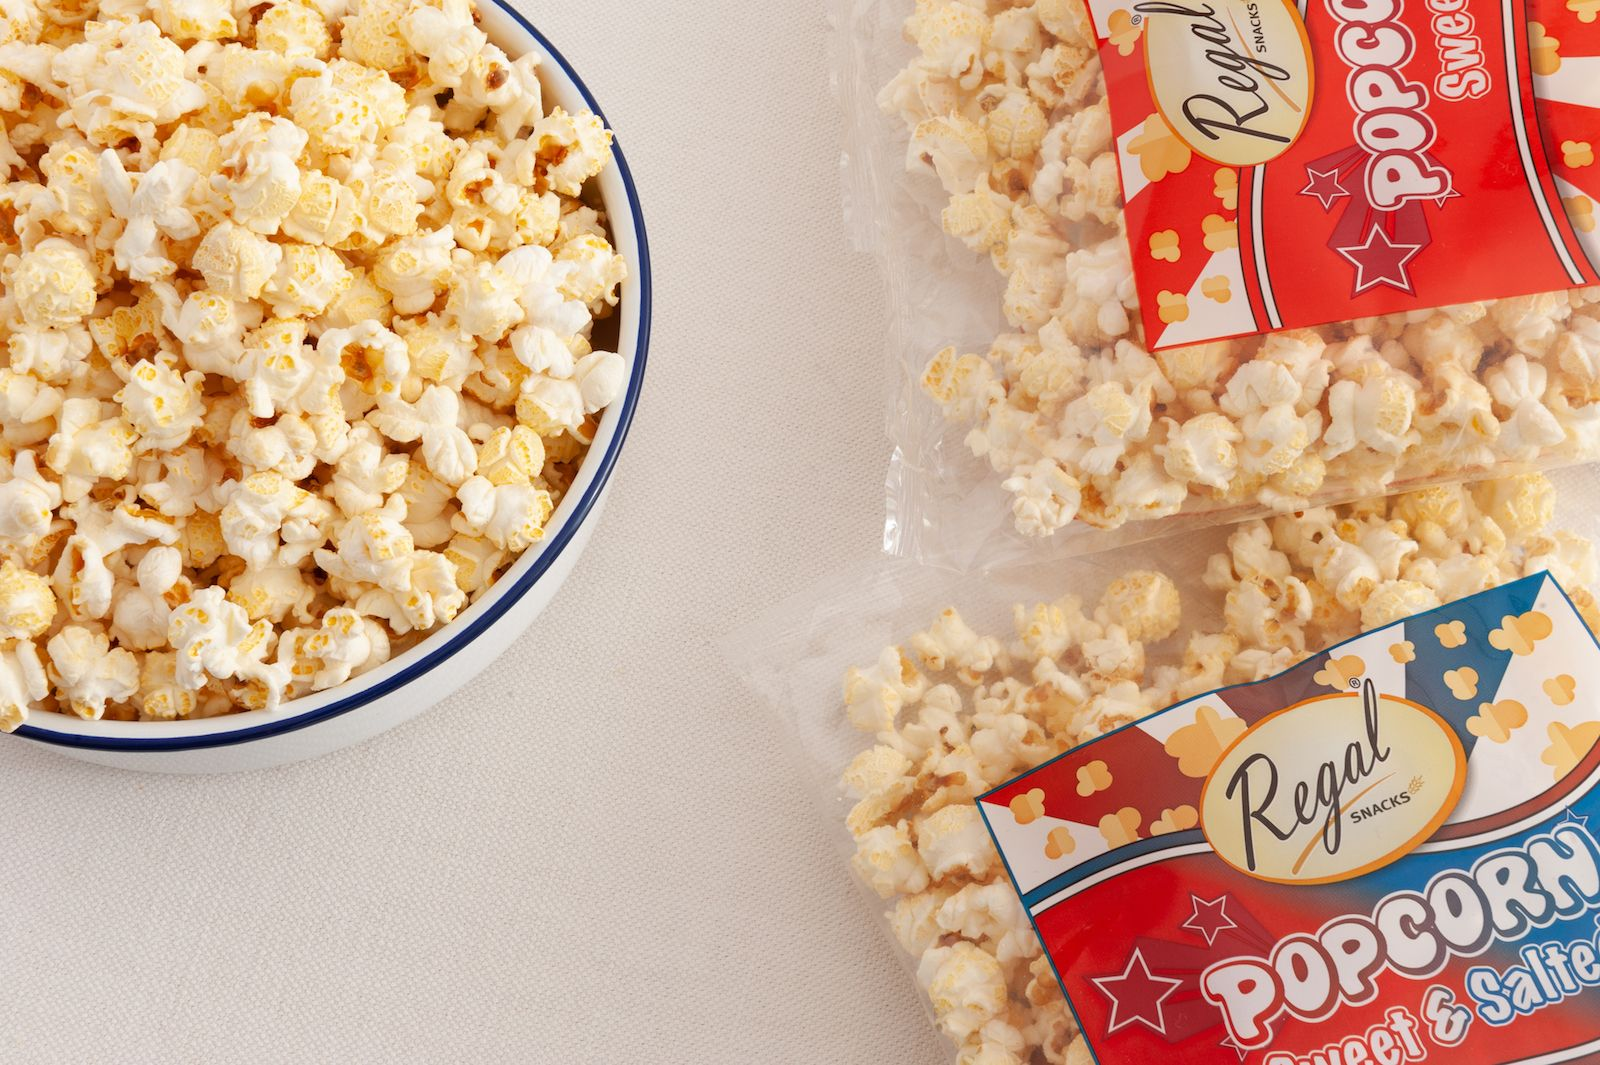 Popcorn recipes |Ultimate sweet popcorn toppings